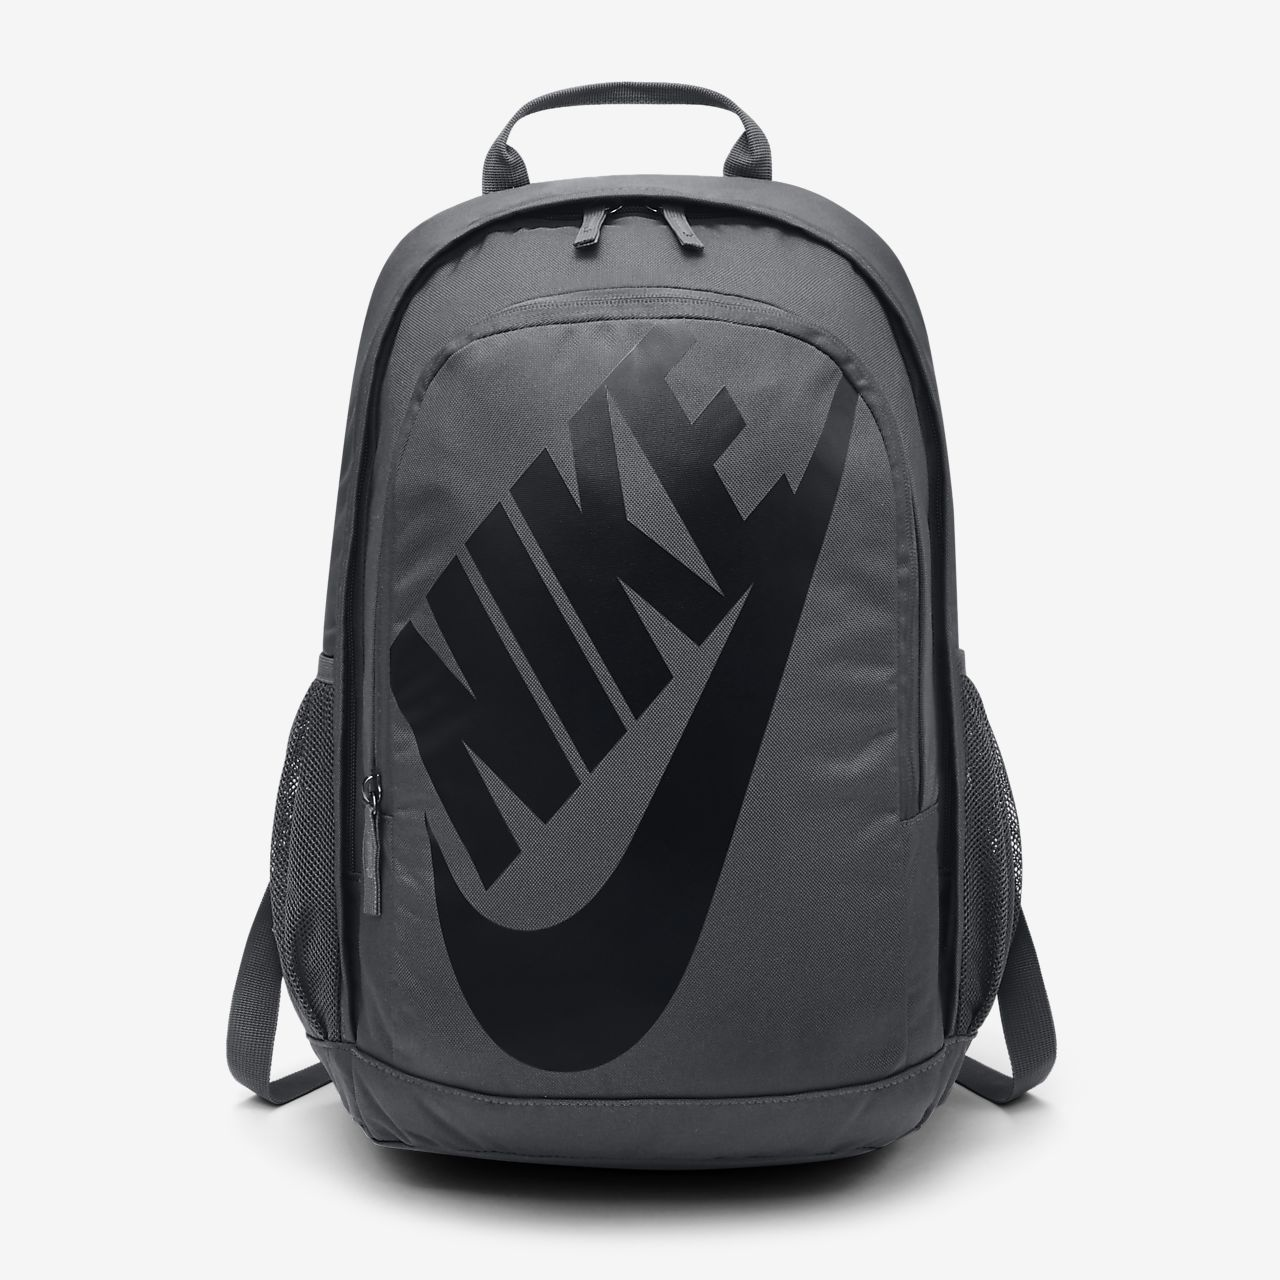 7b7f0a2d30ed Low Resolution Nike Sportswear Hayward Futura 2.0 Backpack Nike Sportswear  Hayward Futura 2.0 Backpack